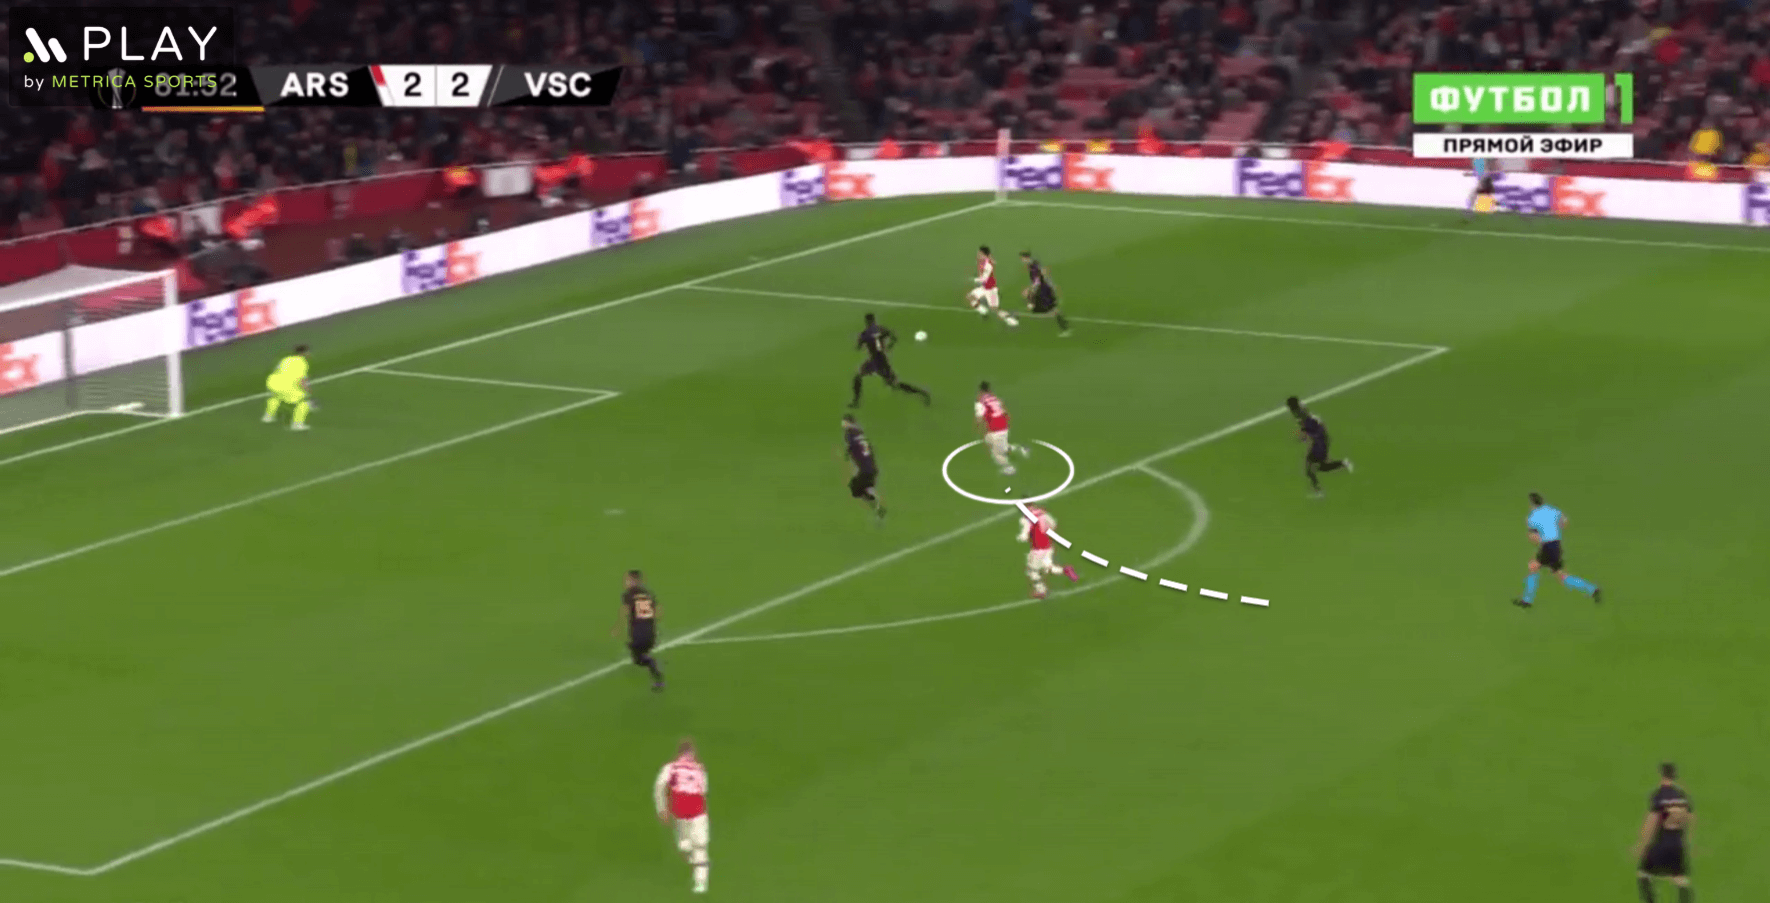 Gabriel Martinelli: A spark of hope for Arsenal